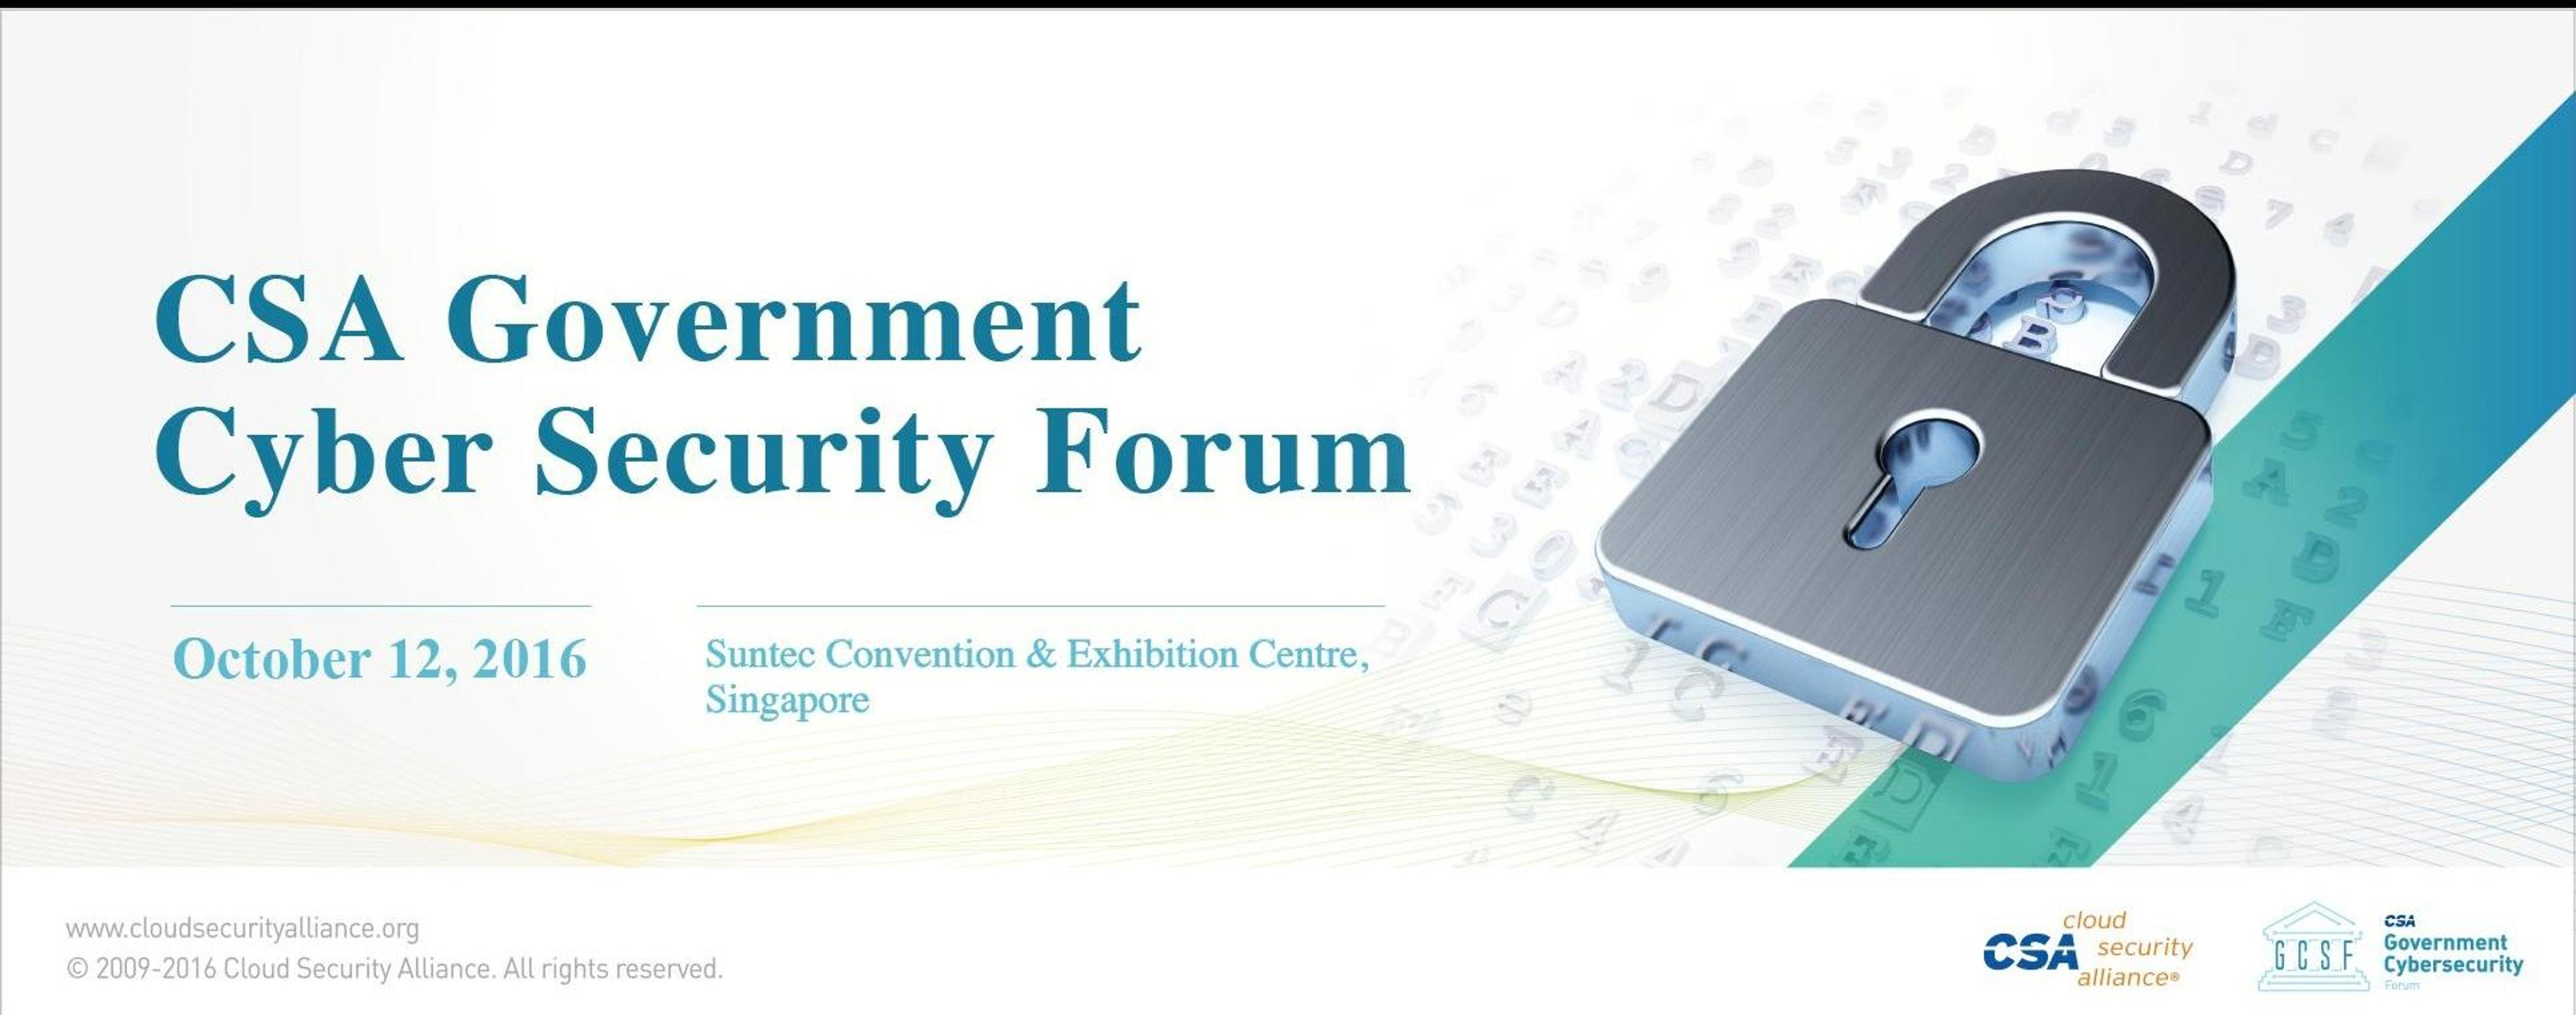 CSA Government Cyber Security Forum 2016   Cloud Security Alliance